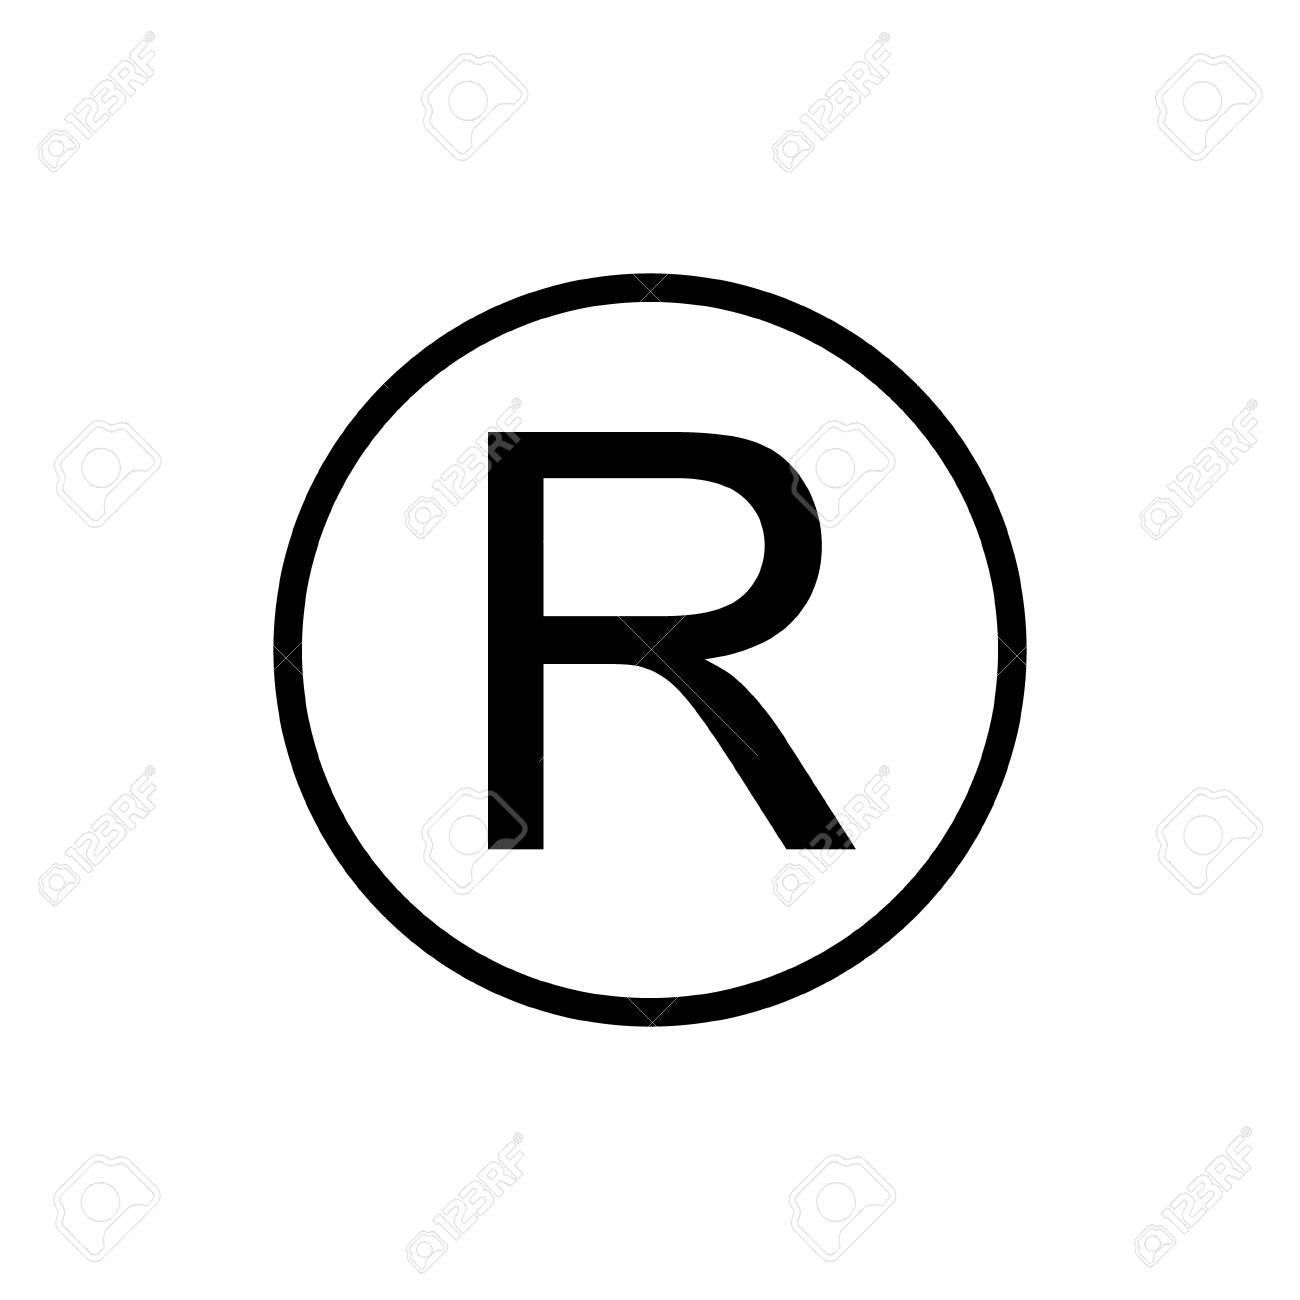 Registered trademark sign dark gray icon on transparent background registered trademark sign dark gray icon on transparent background stock vector 84565467 buycottarizona Gallery